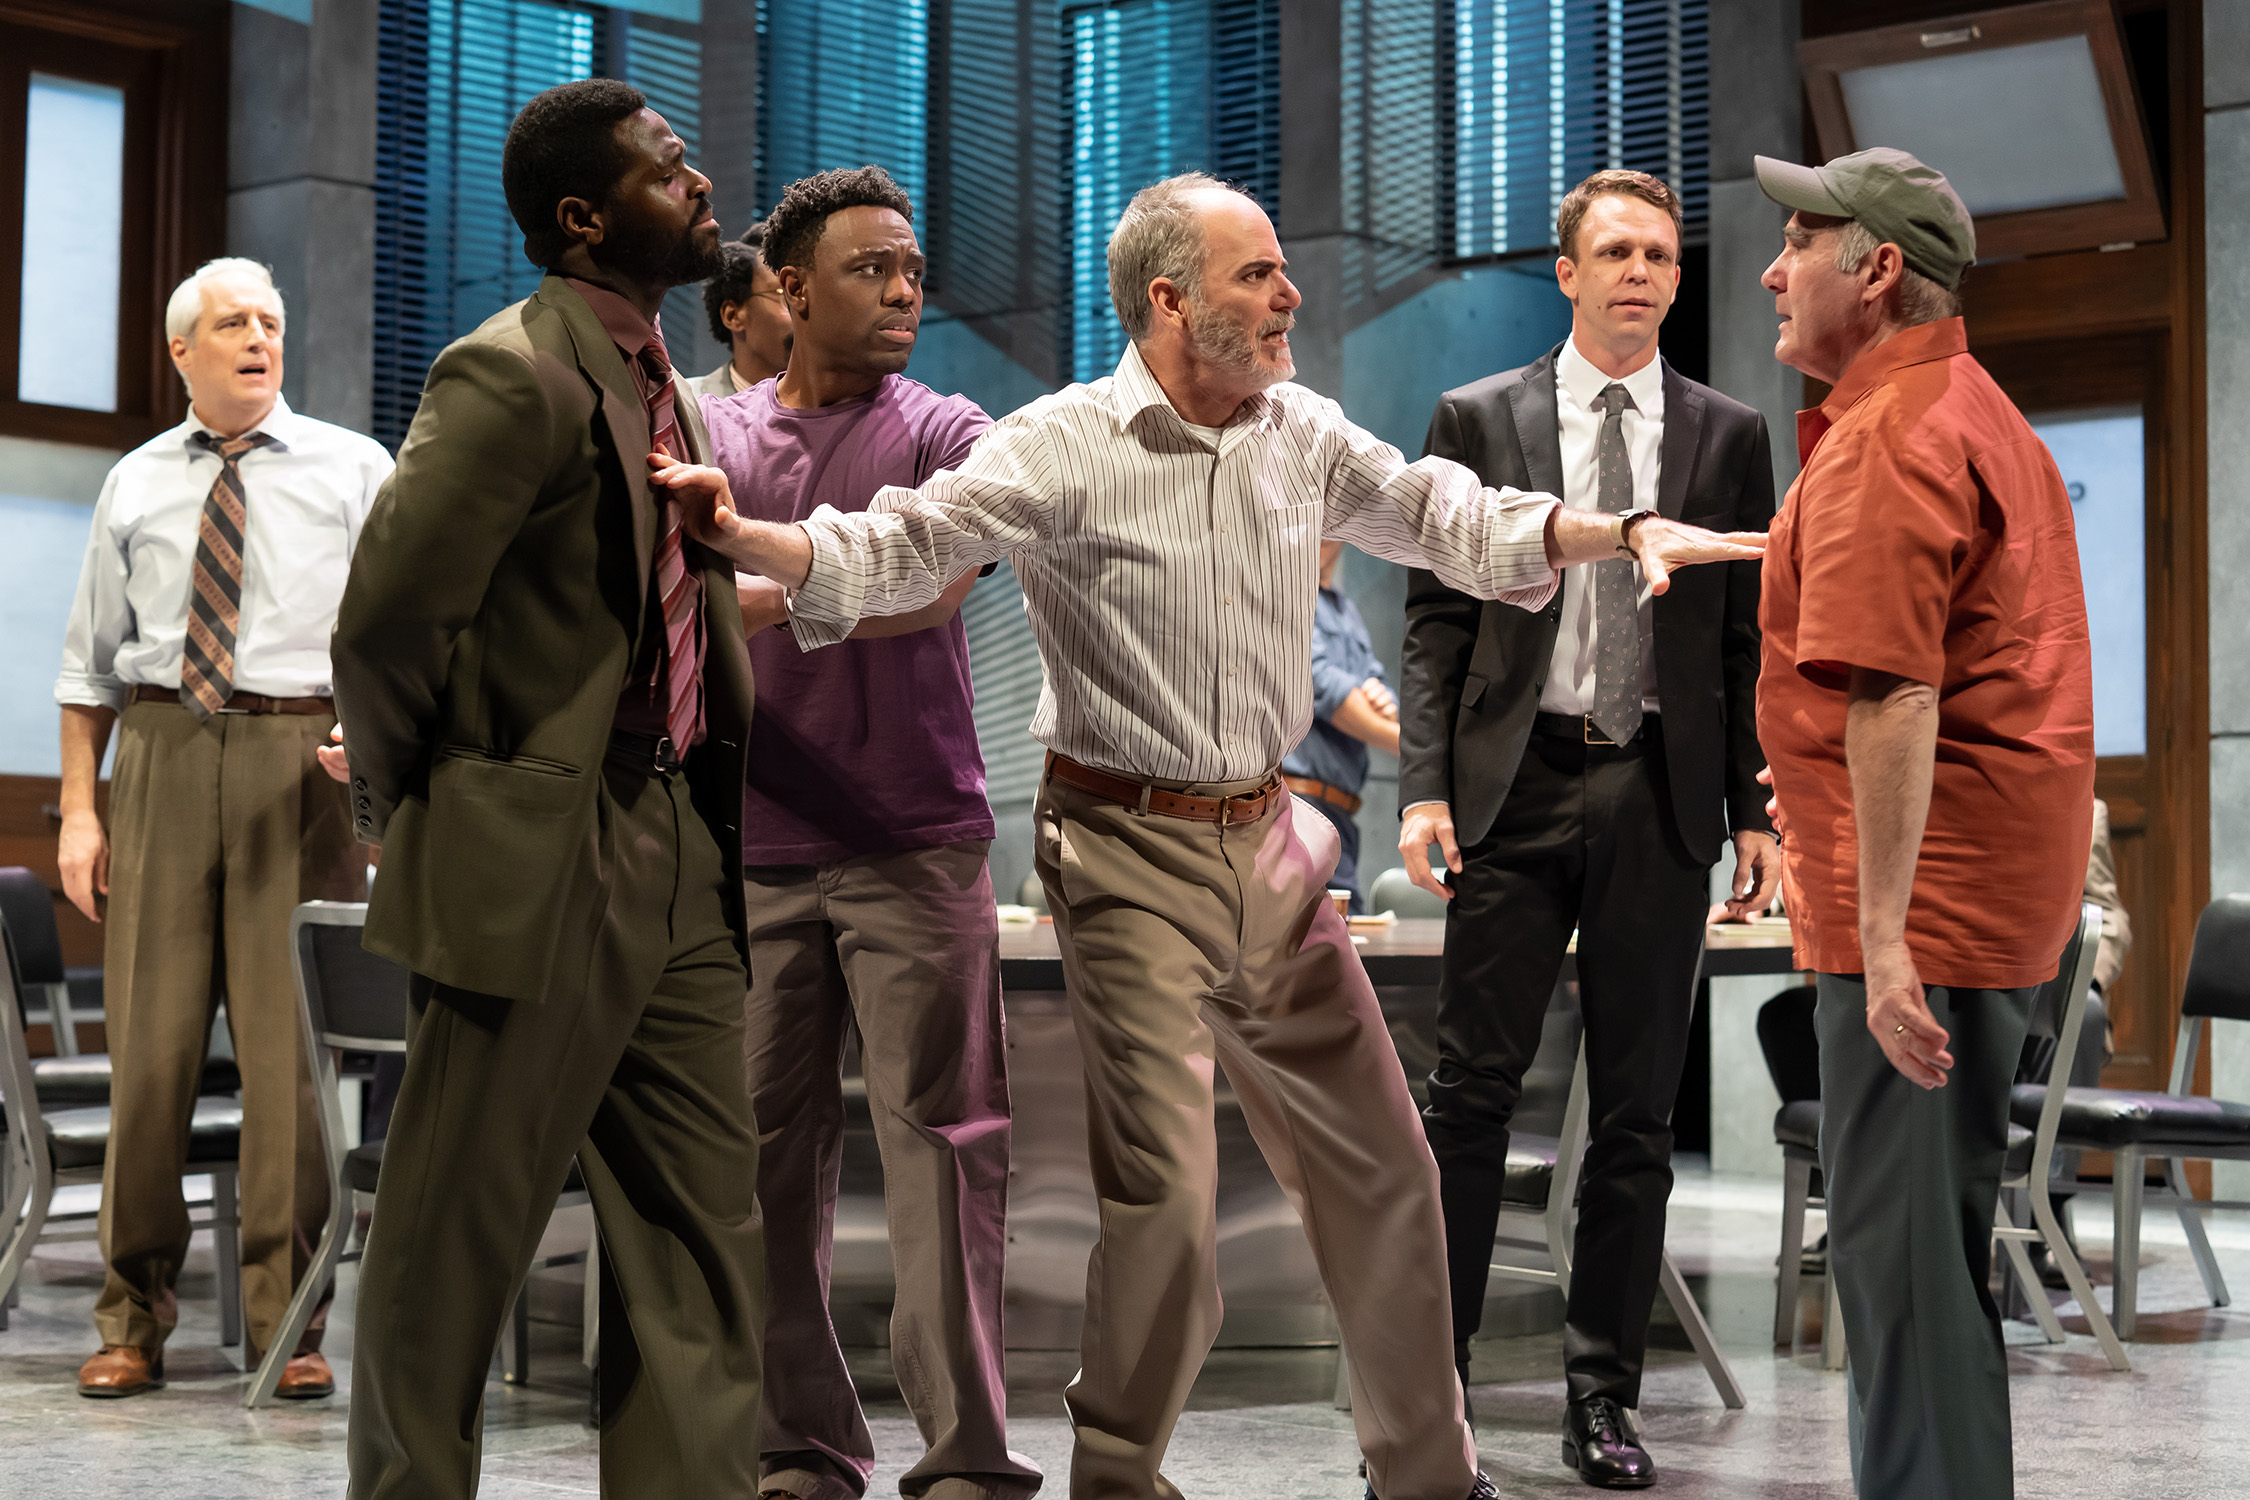 Six men stand in a jury room as heated words are exchanged between two jurors (actors Lawrence Redmond and Bueka Uwemedimo). A foreman (actor Eric Hissom) stands between the two men, attempting to deescalate the flight. Image is from the Ford's Theatre 2019 production of Twelve Angry Men, directed by Sheldon Epps. Photo by Scott Suchman.